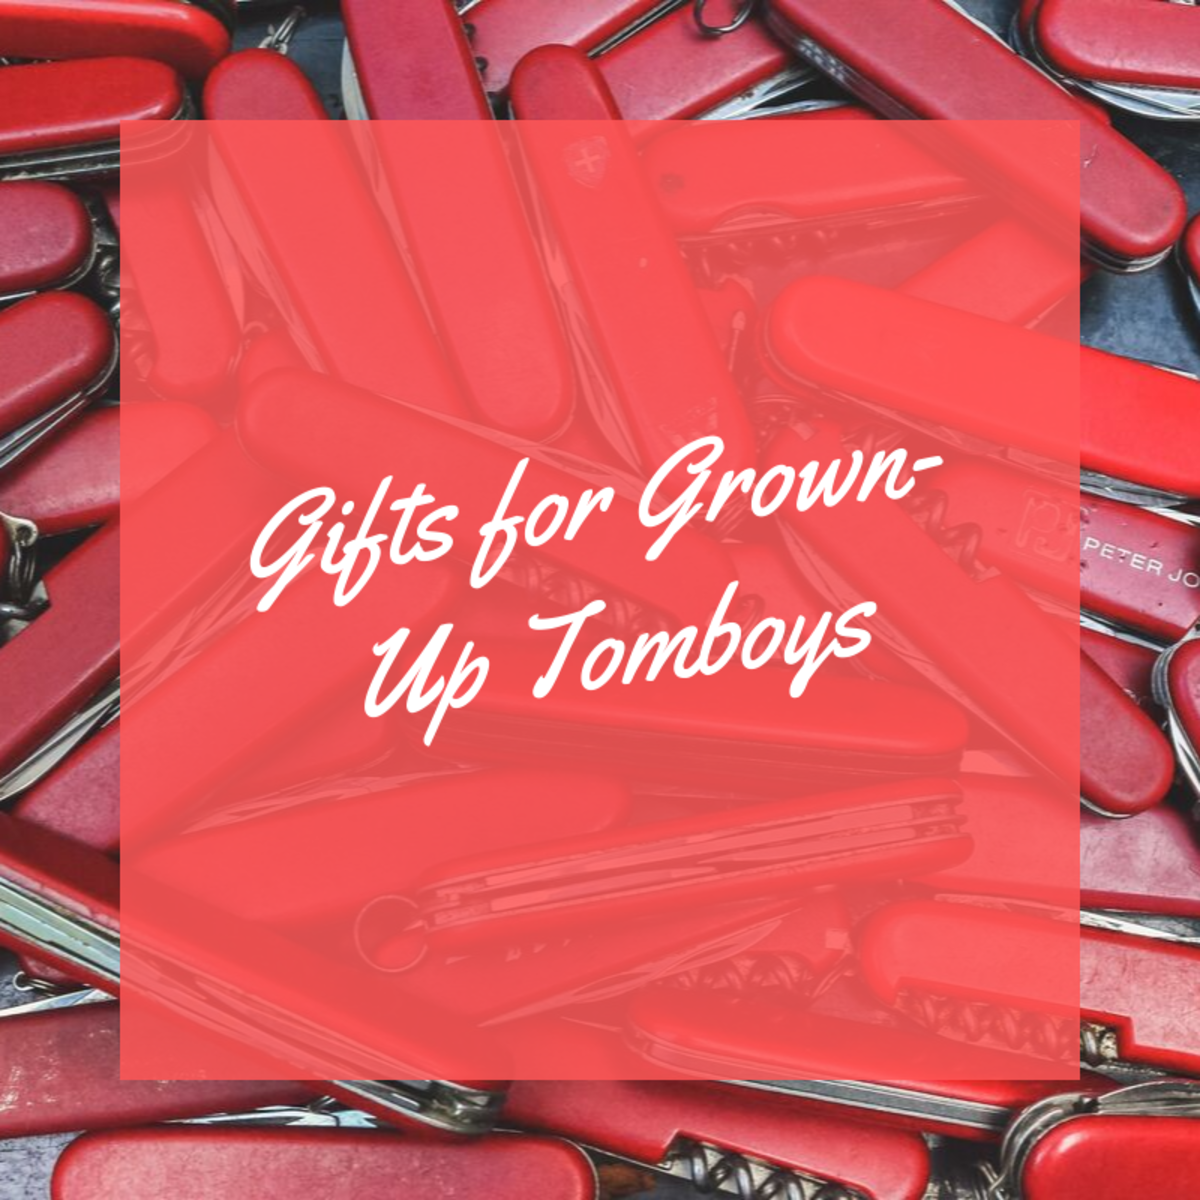 Great Gifts for Grown-Up Tomboys